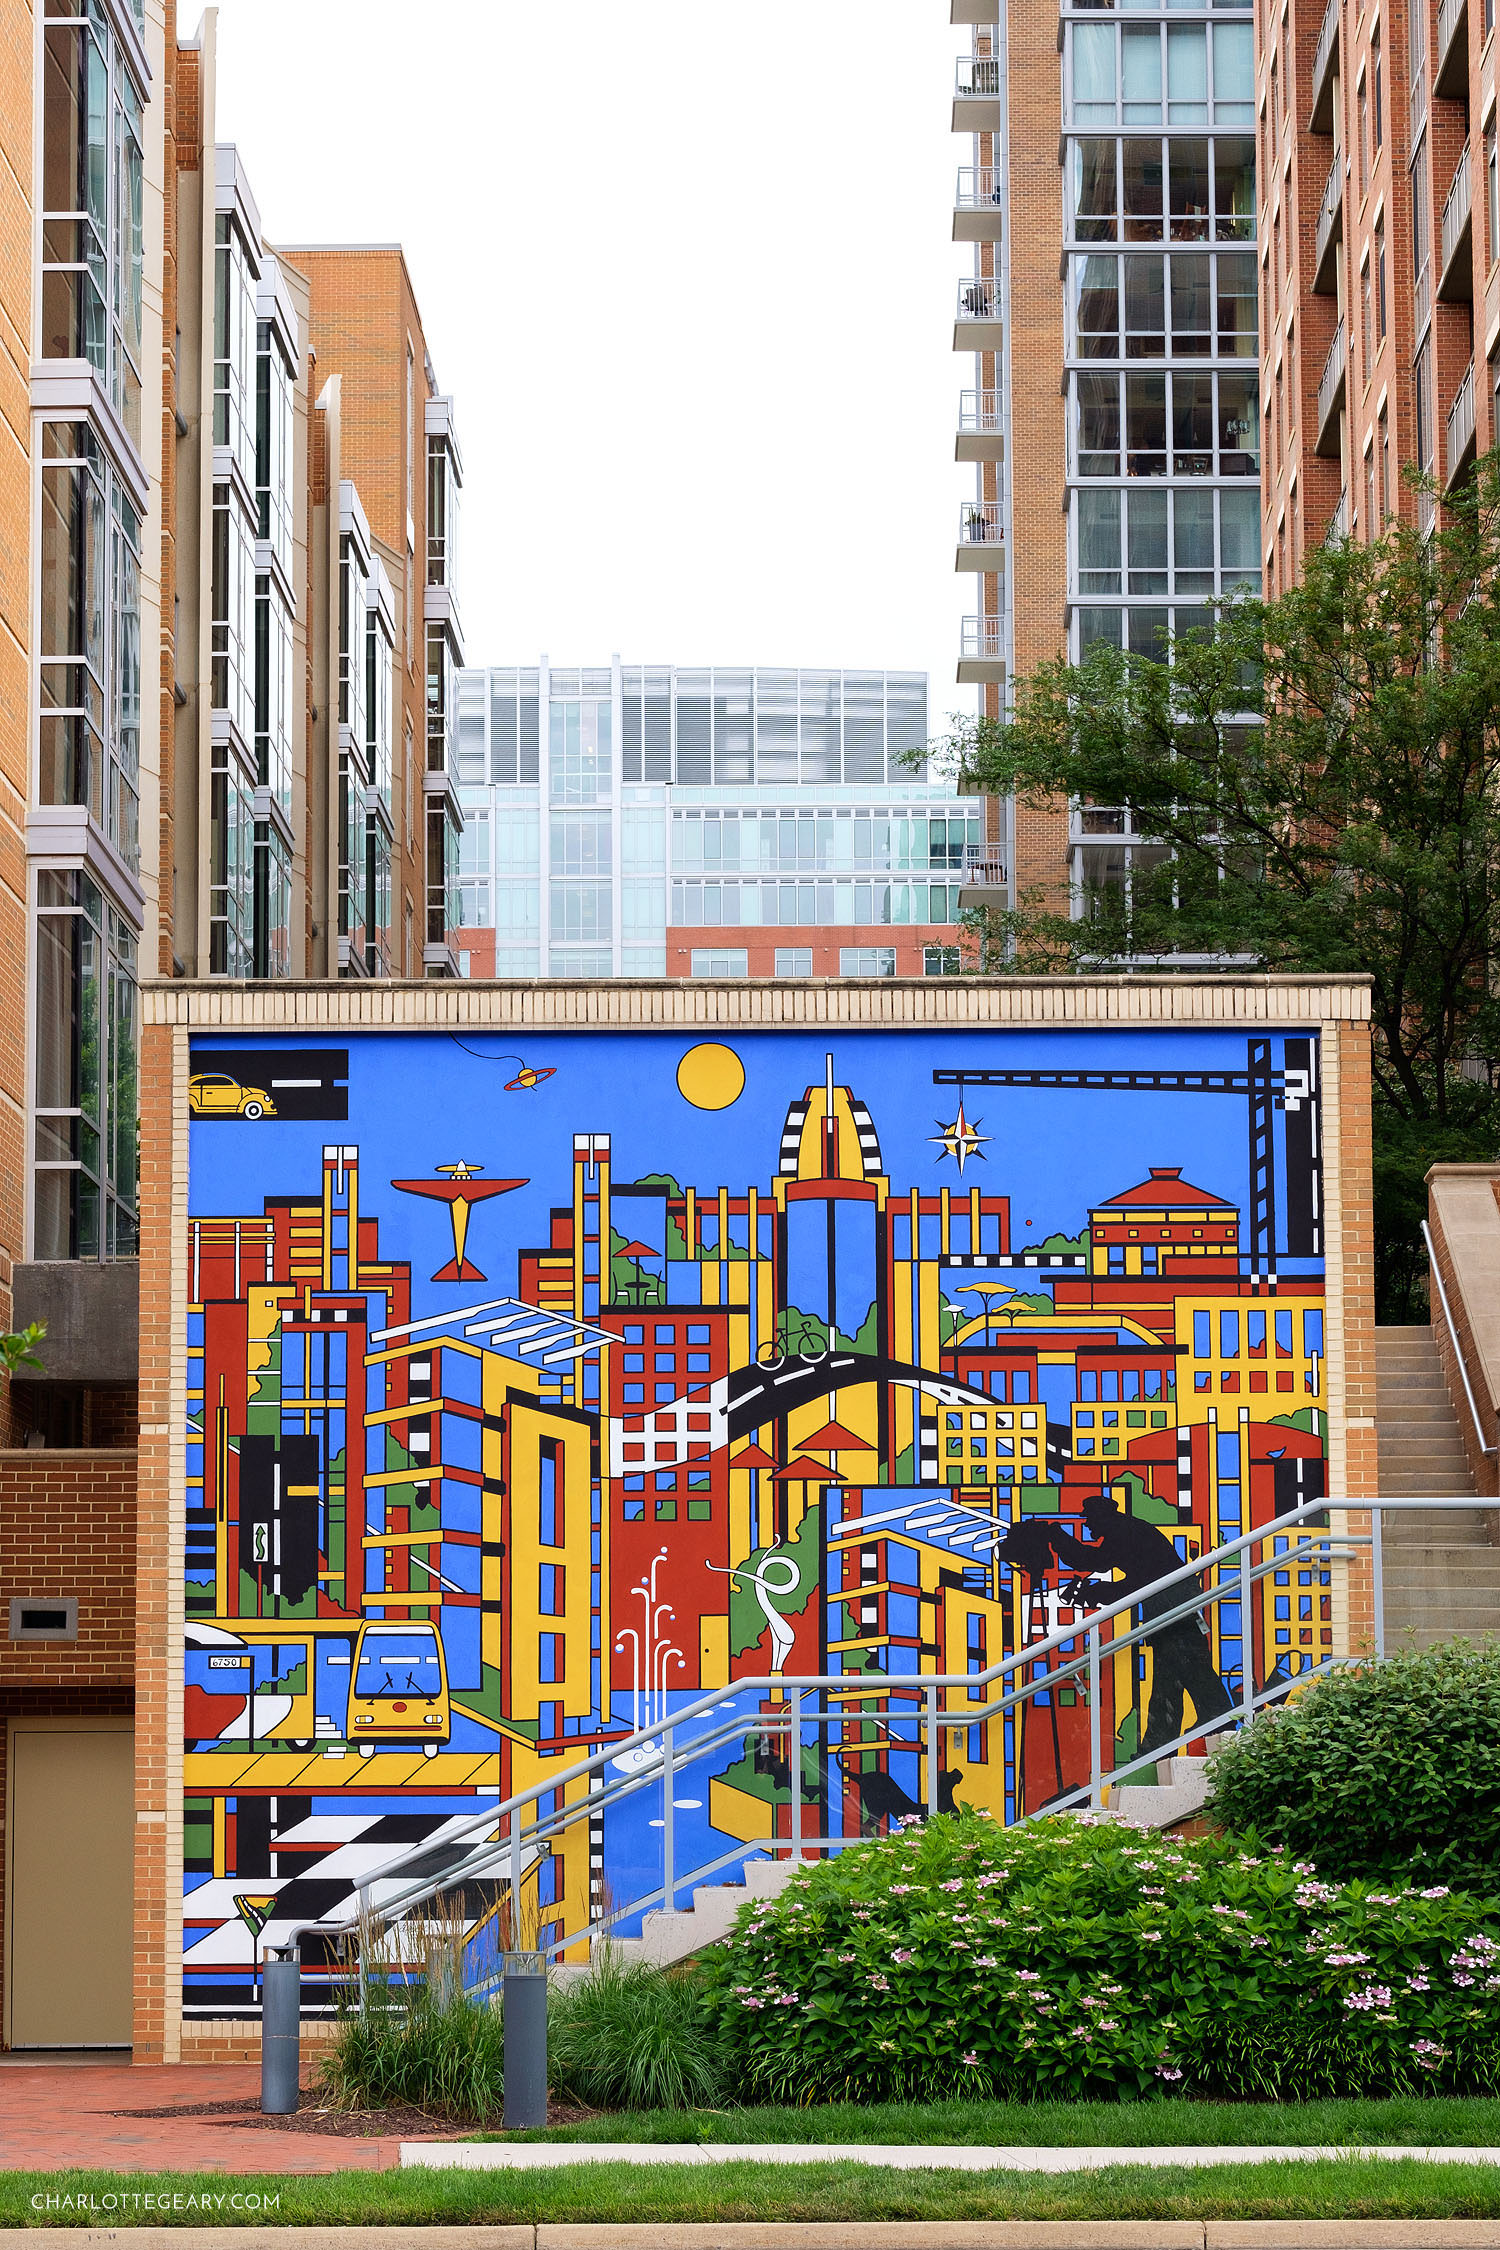 Midtown Community Mural, by Dana Ann Scheurer at Reston Town Center